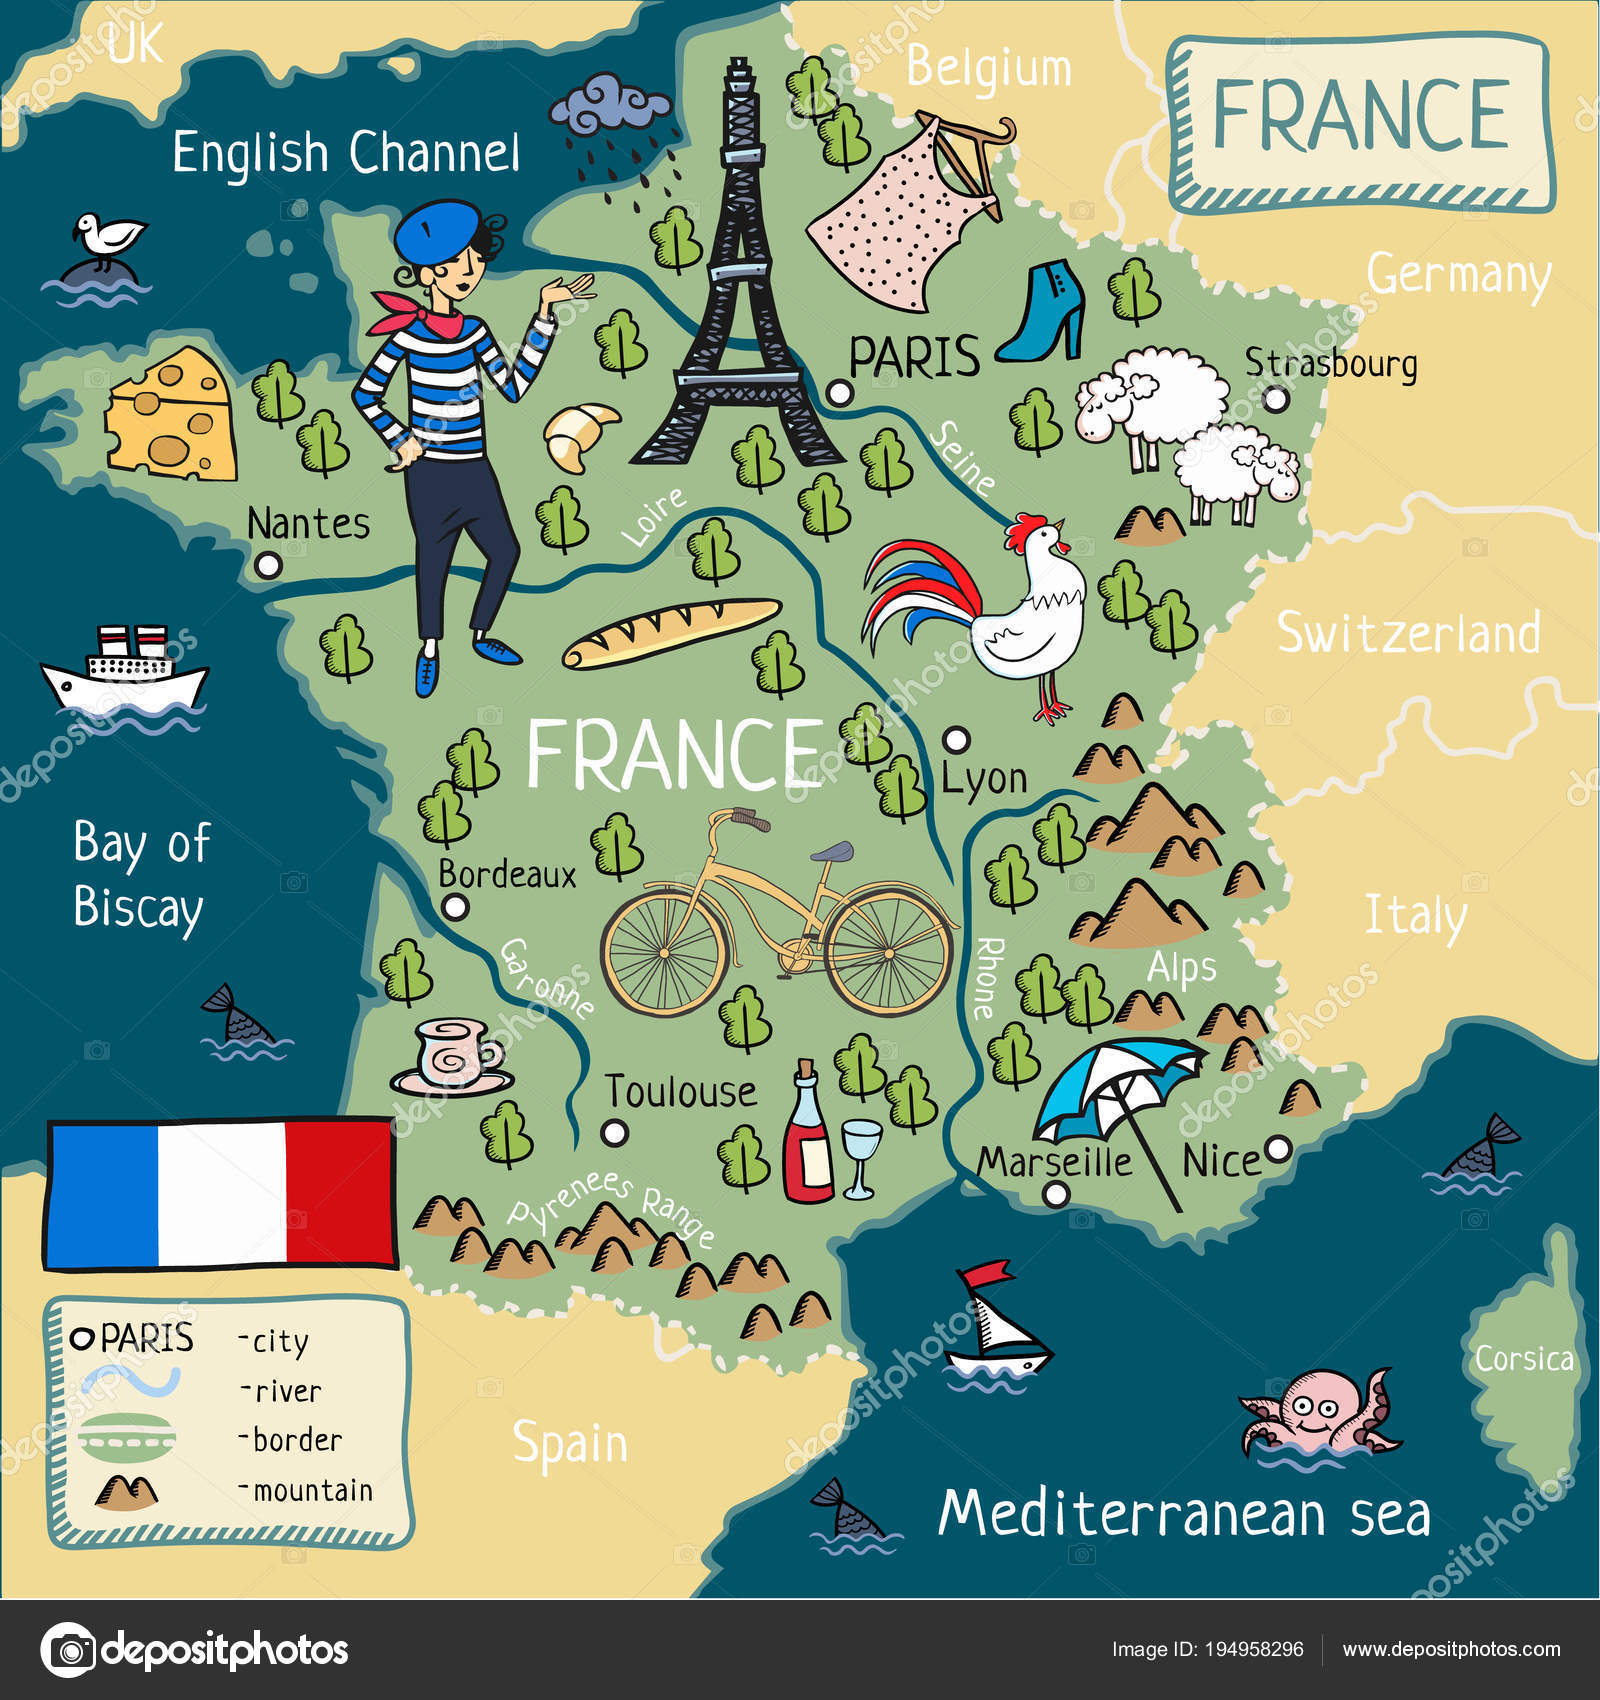 The Map Of France With The City.Cartoon Map Of France Cartoon Map France Stock Vector